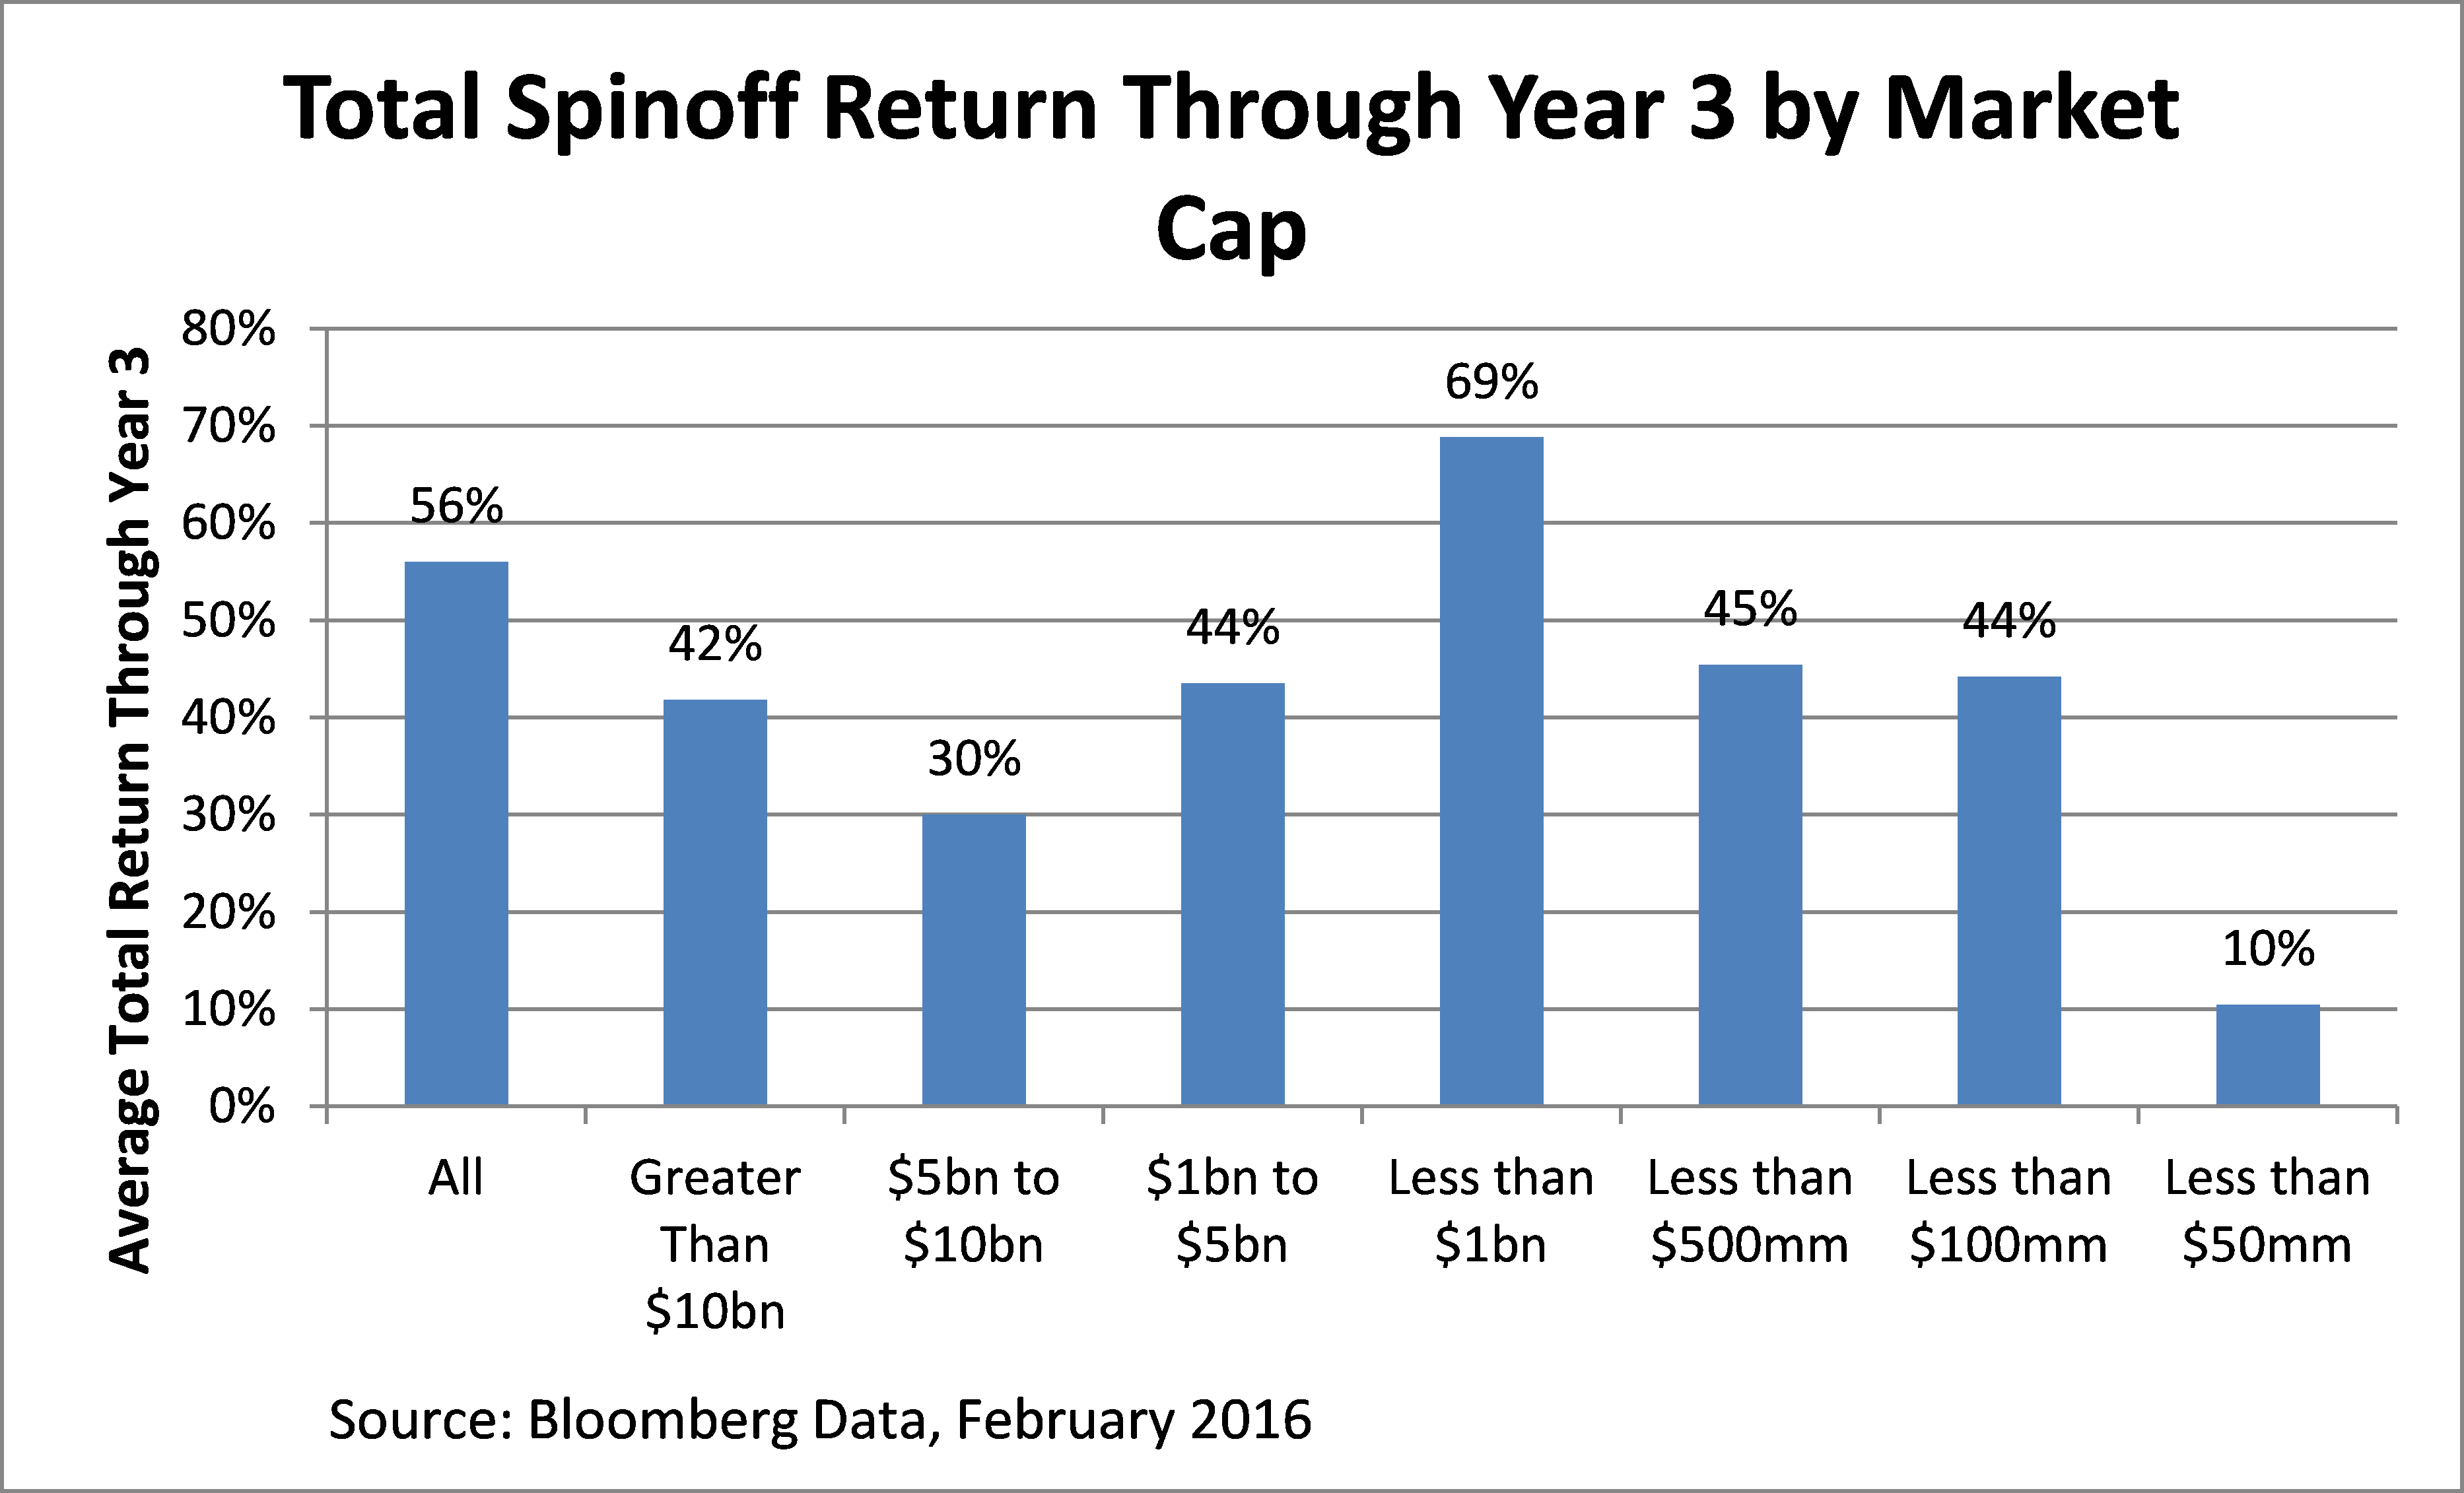 spinoff 3 year performance by market cap